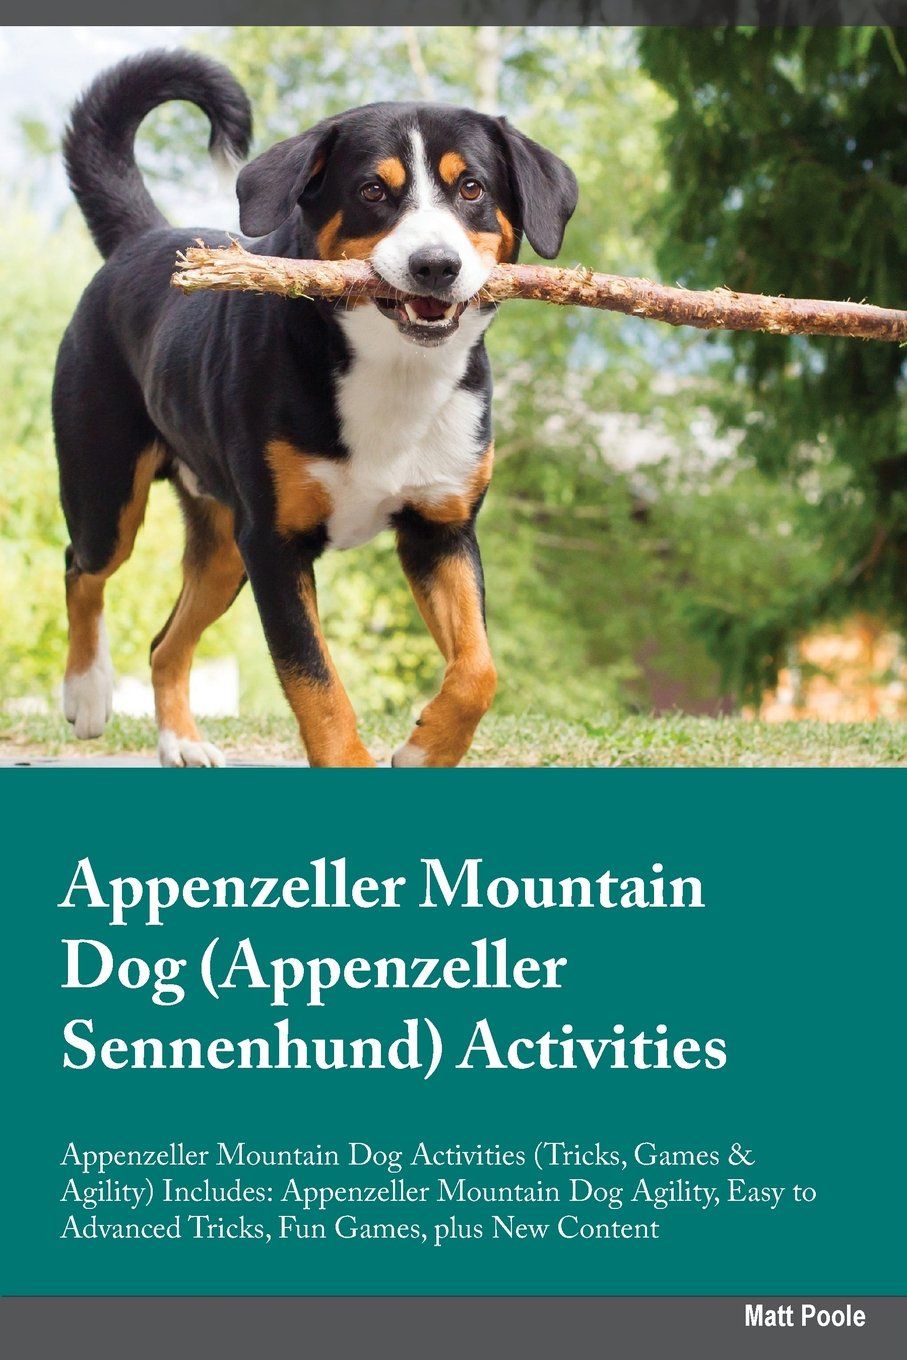 Appenzeller Mountain Dog Appenzeller Sennenhund Activities